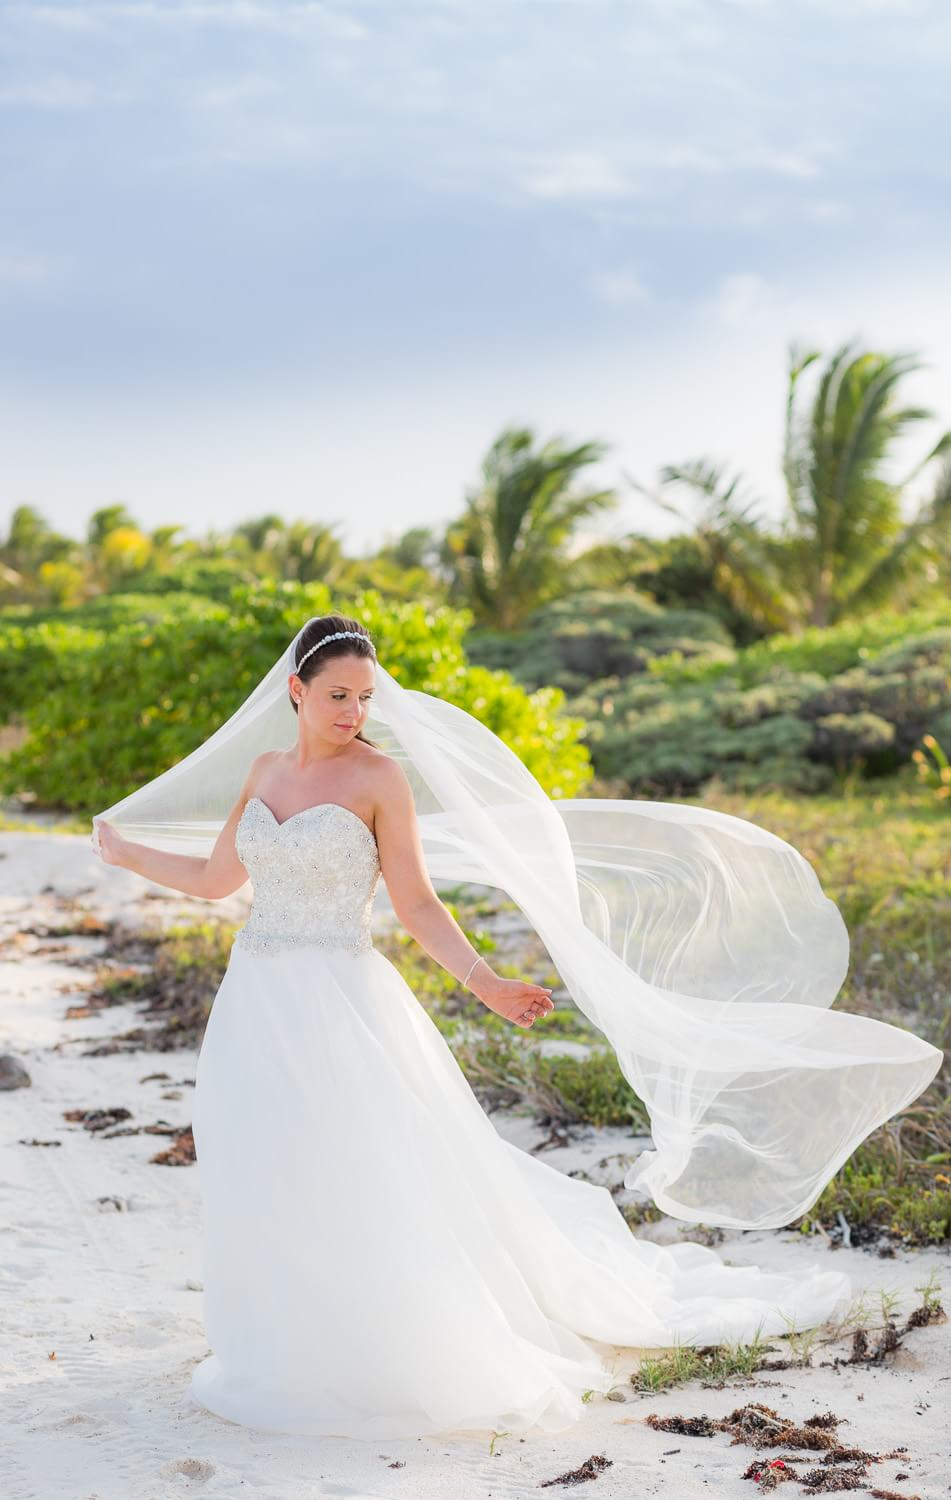 Bride on beach at wedding in Mexico